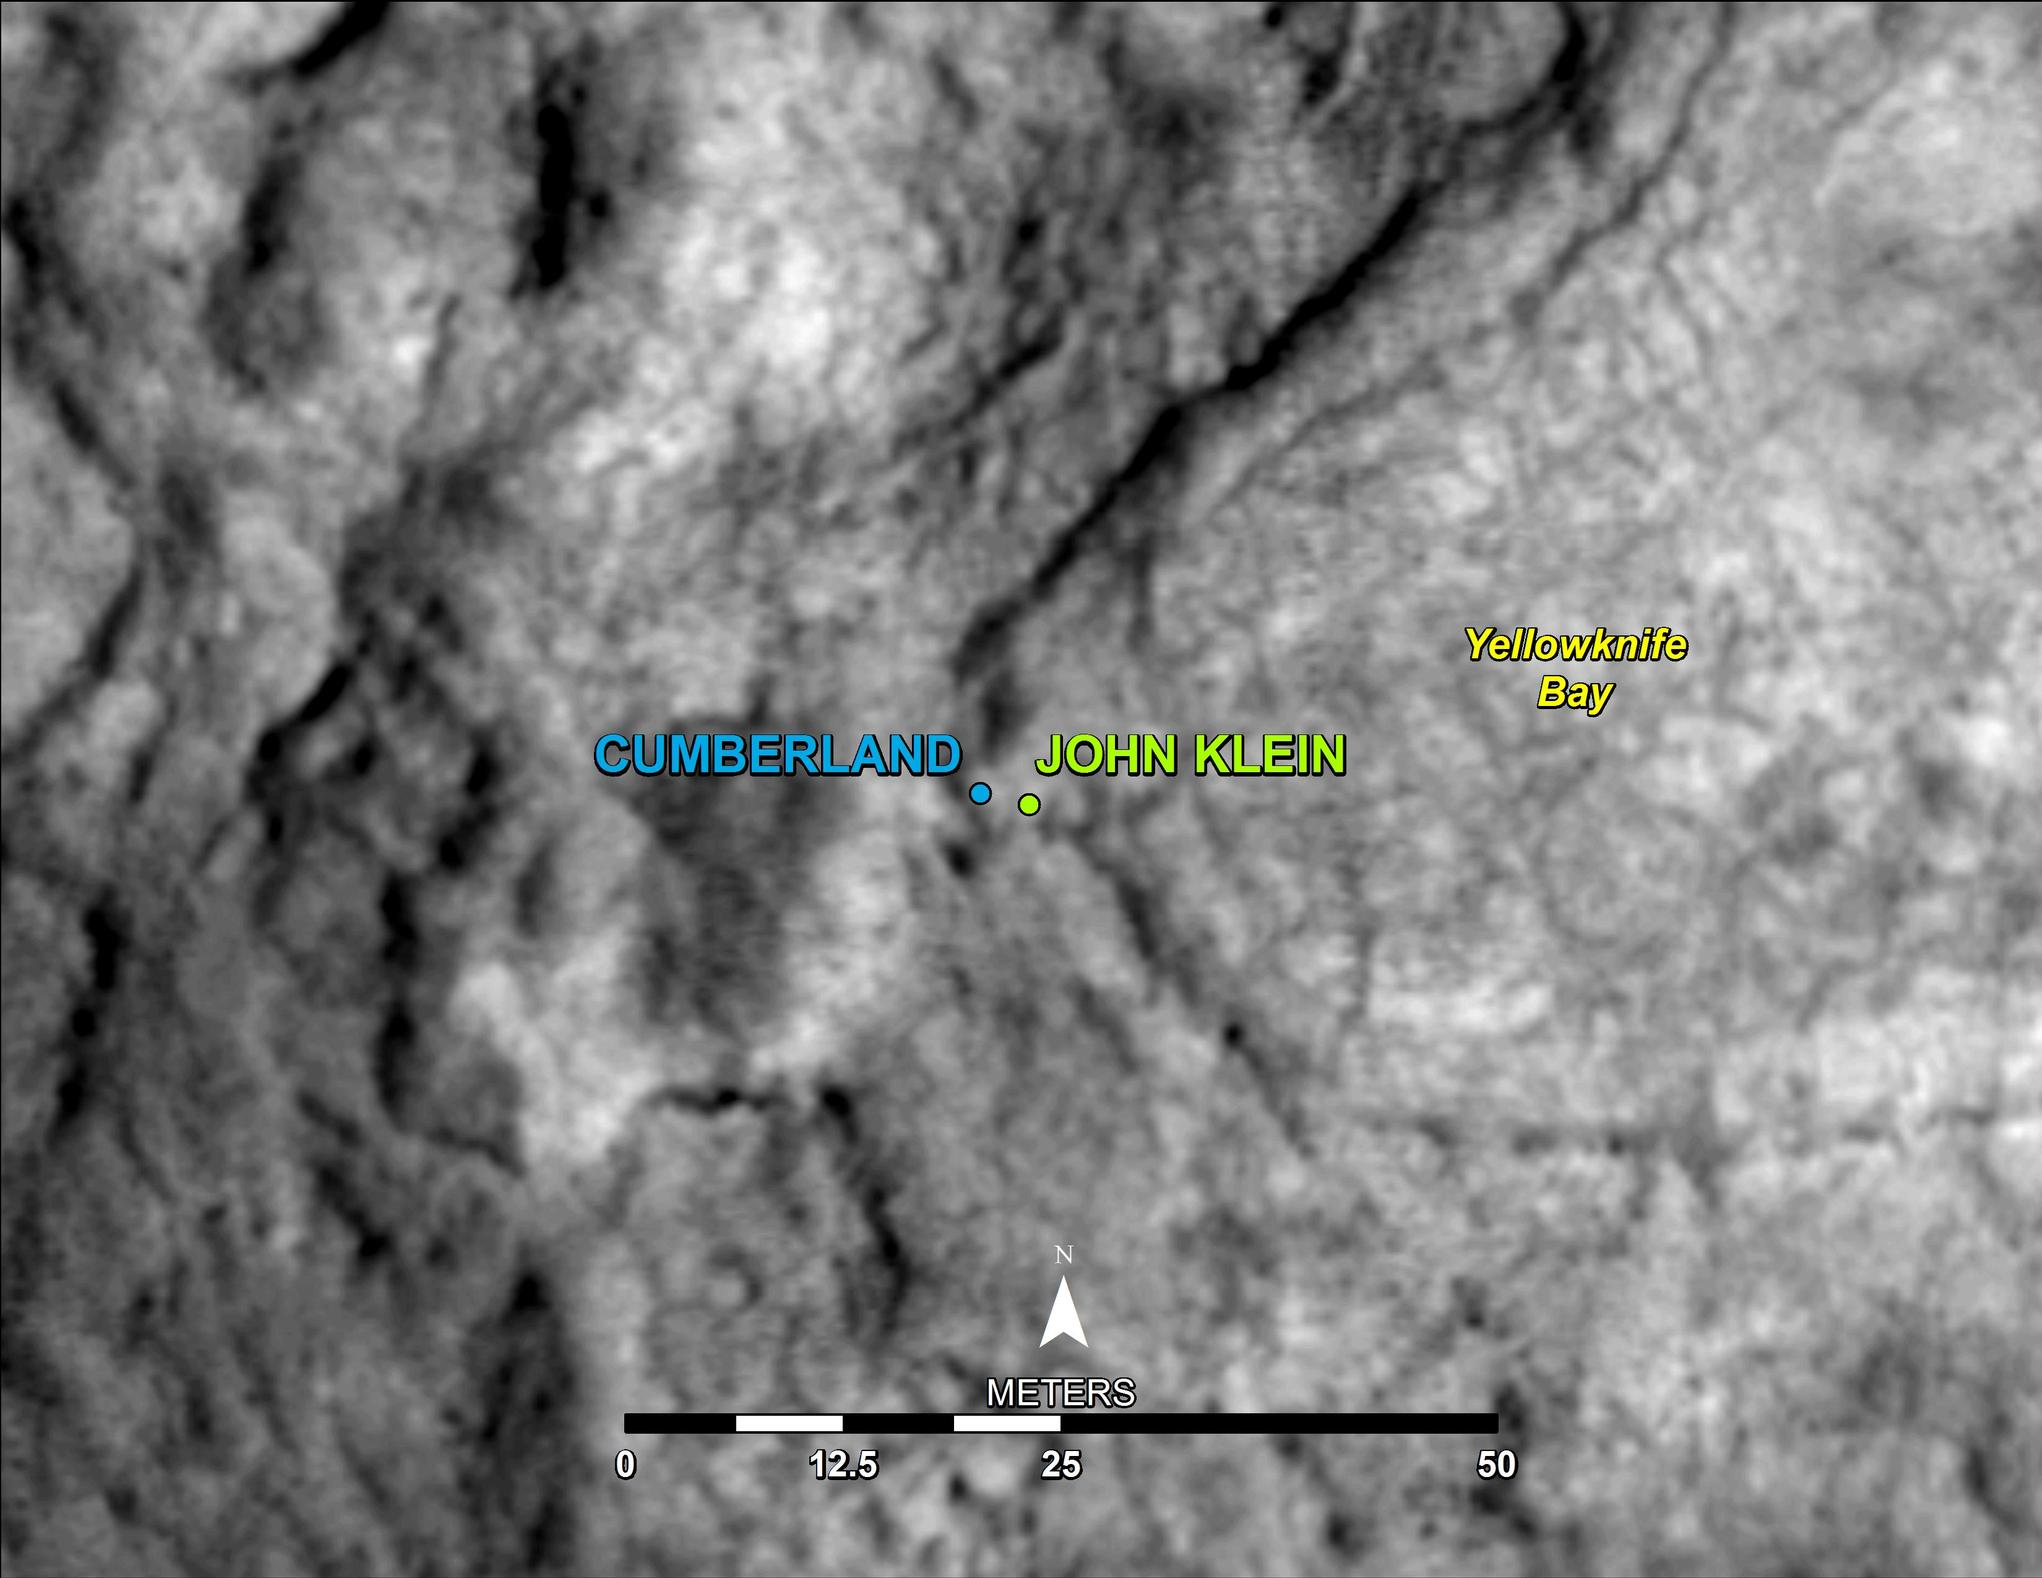 'Cumberland' Selected as Curiosity's Second Drilling Target